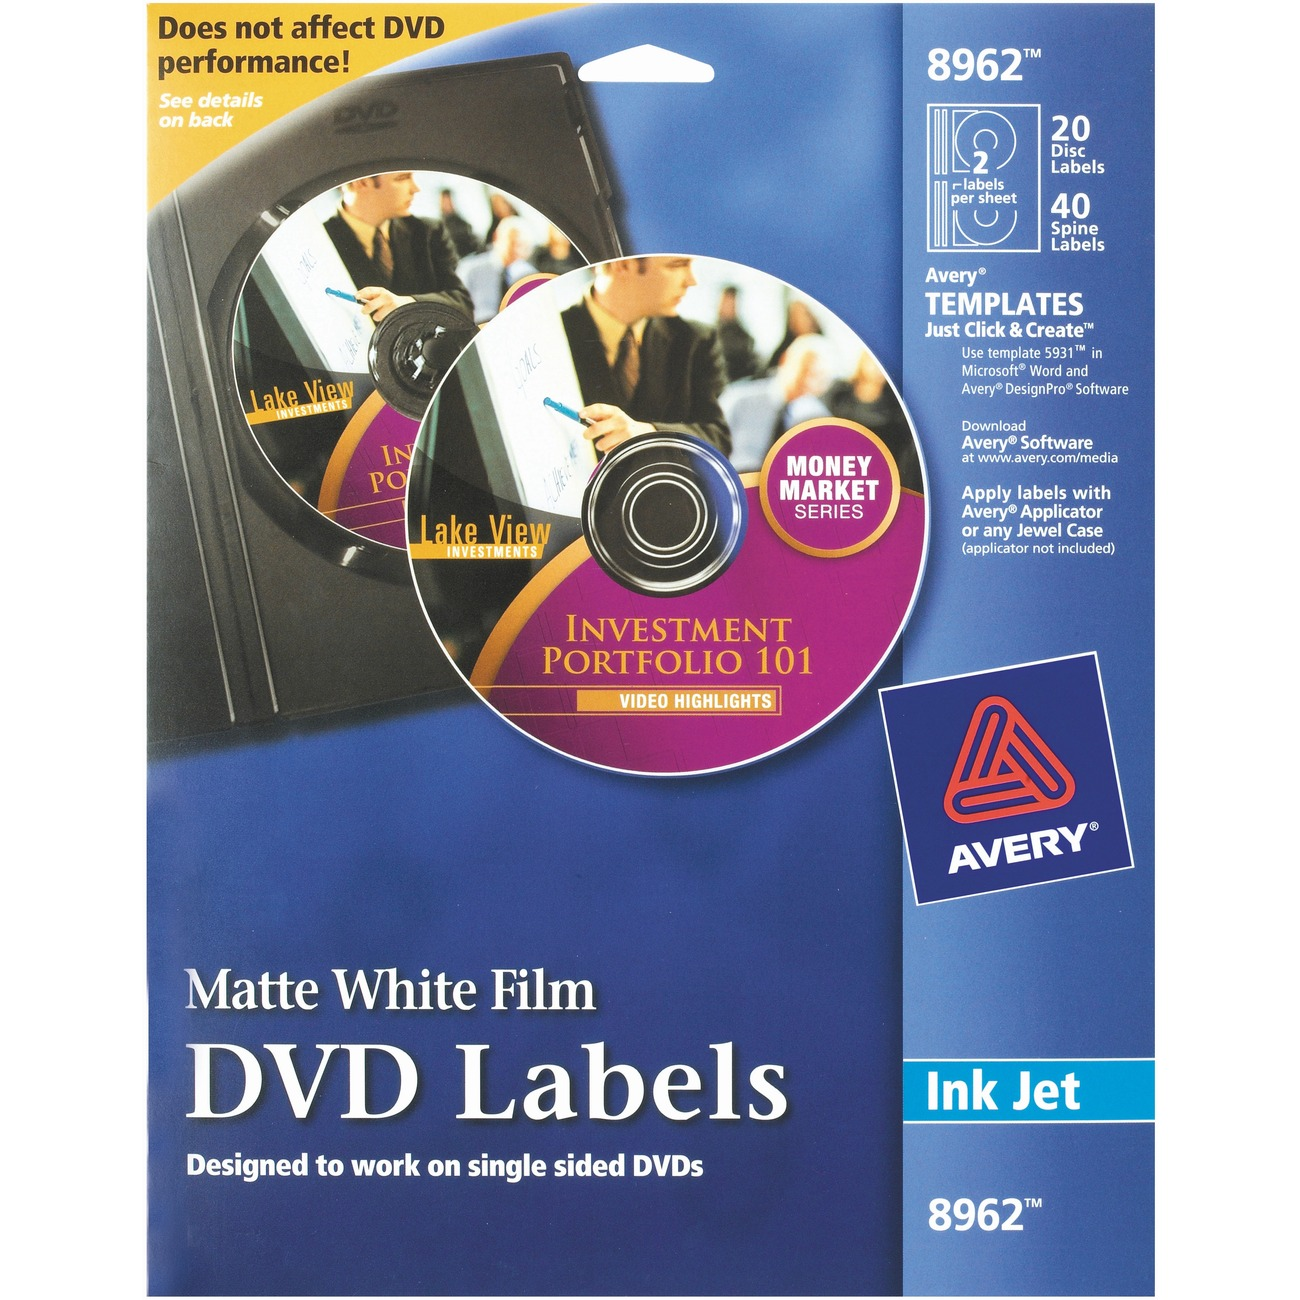 Ave8962 Avery Film Dvd Labels With 40 Spine Labels Office Advantage